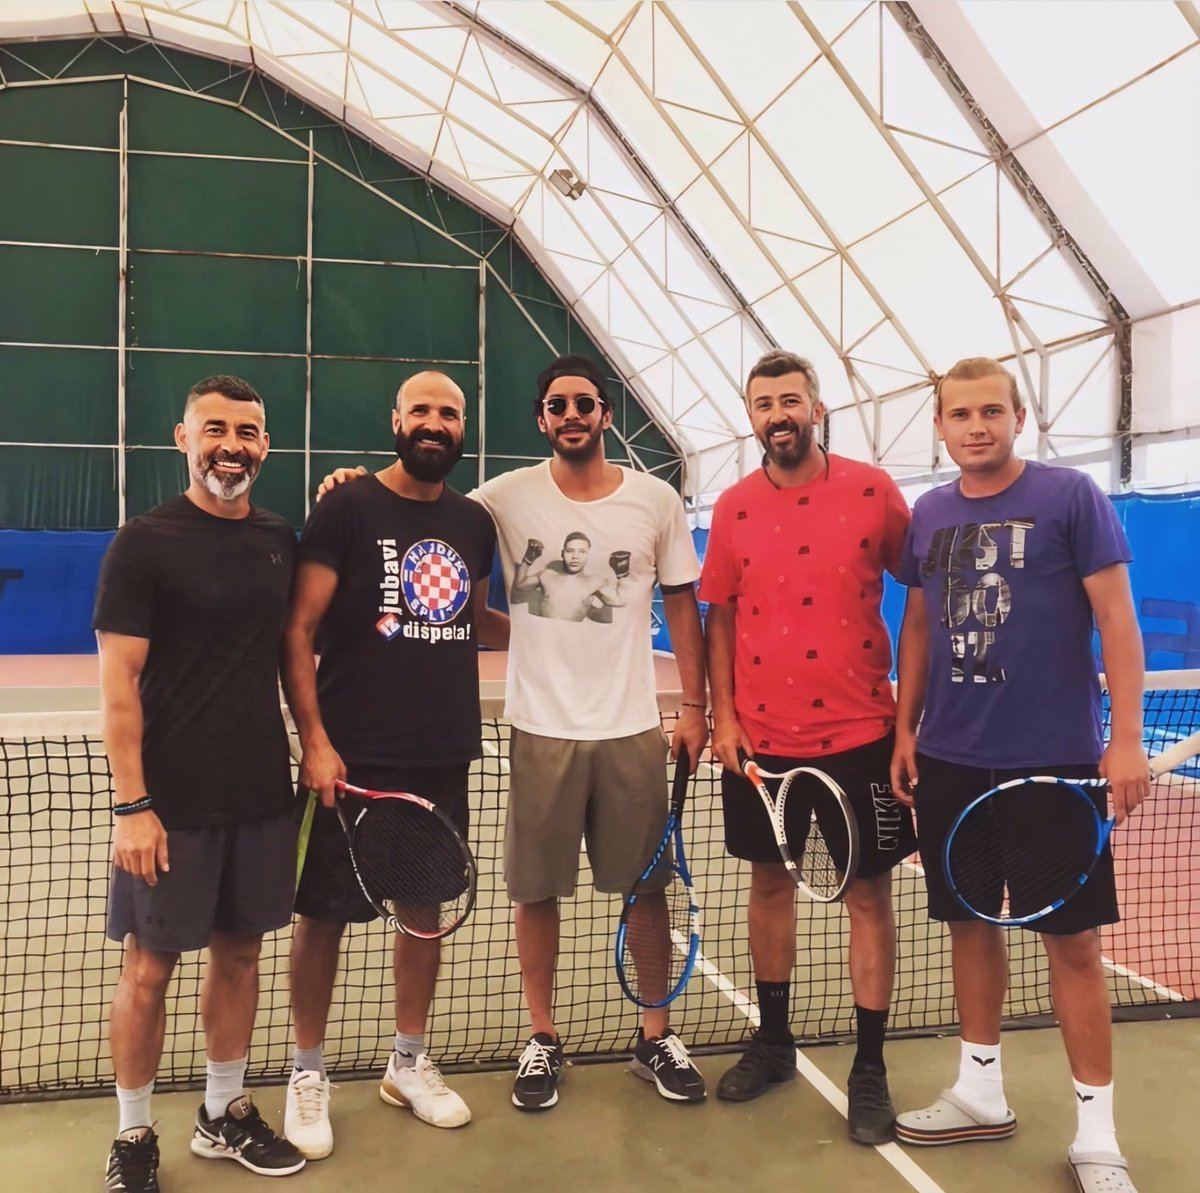 Remember Barış saying in one interview that tennis is the only sport he couldn't do and wanted to learn more about  Stan a king that keep his words & love to improve his skills  <br>http://pic.twitter.com/uz9axSeA6l